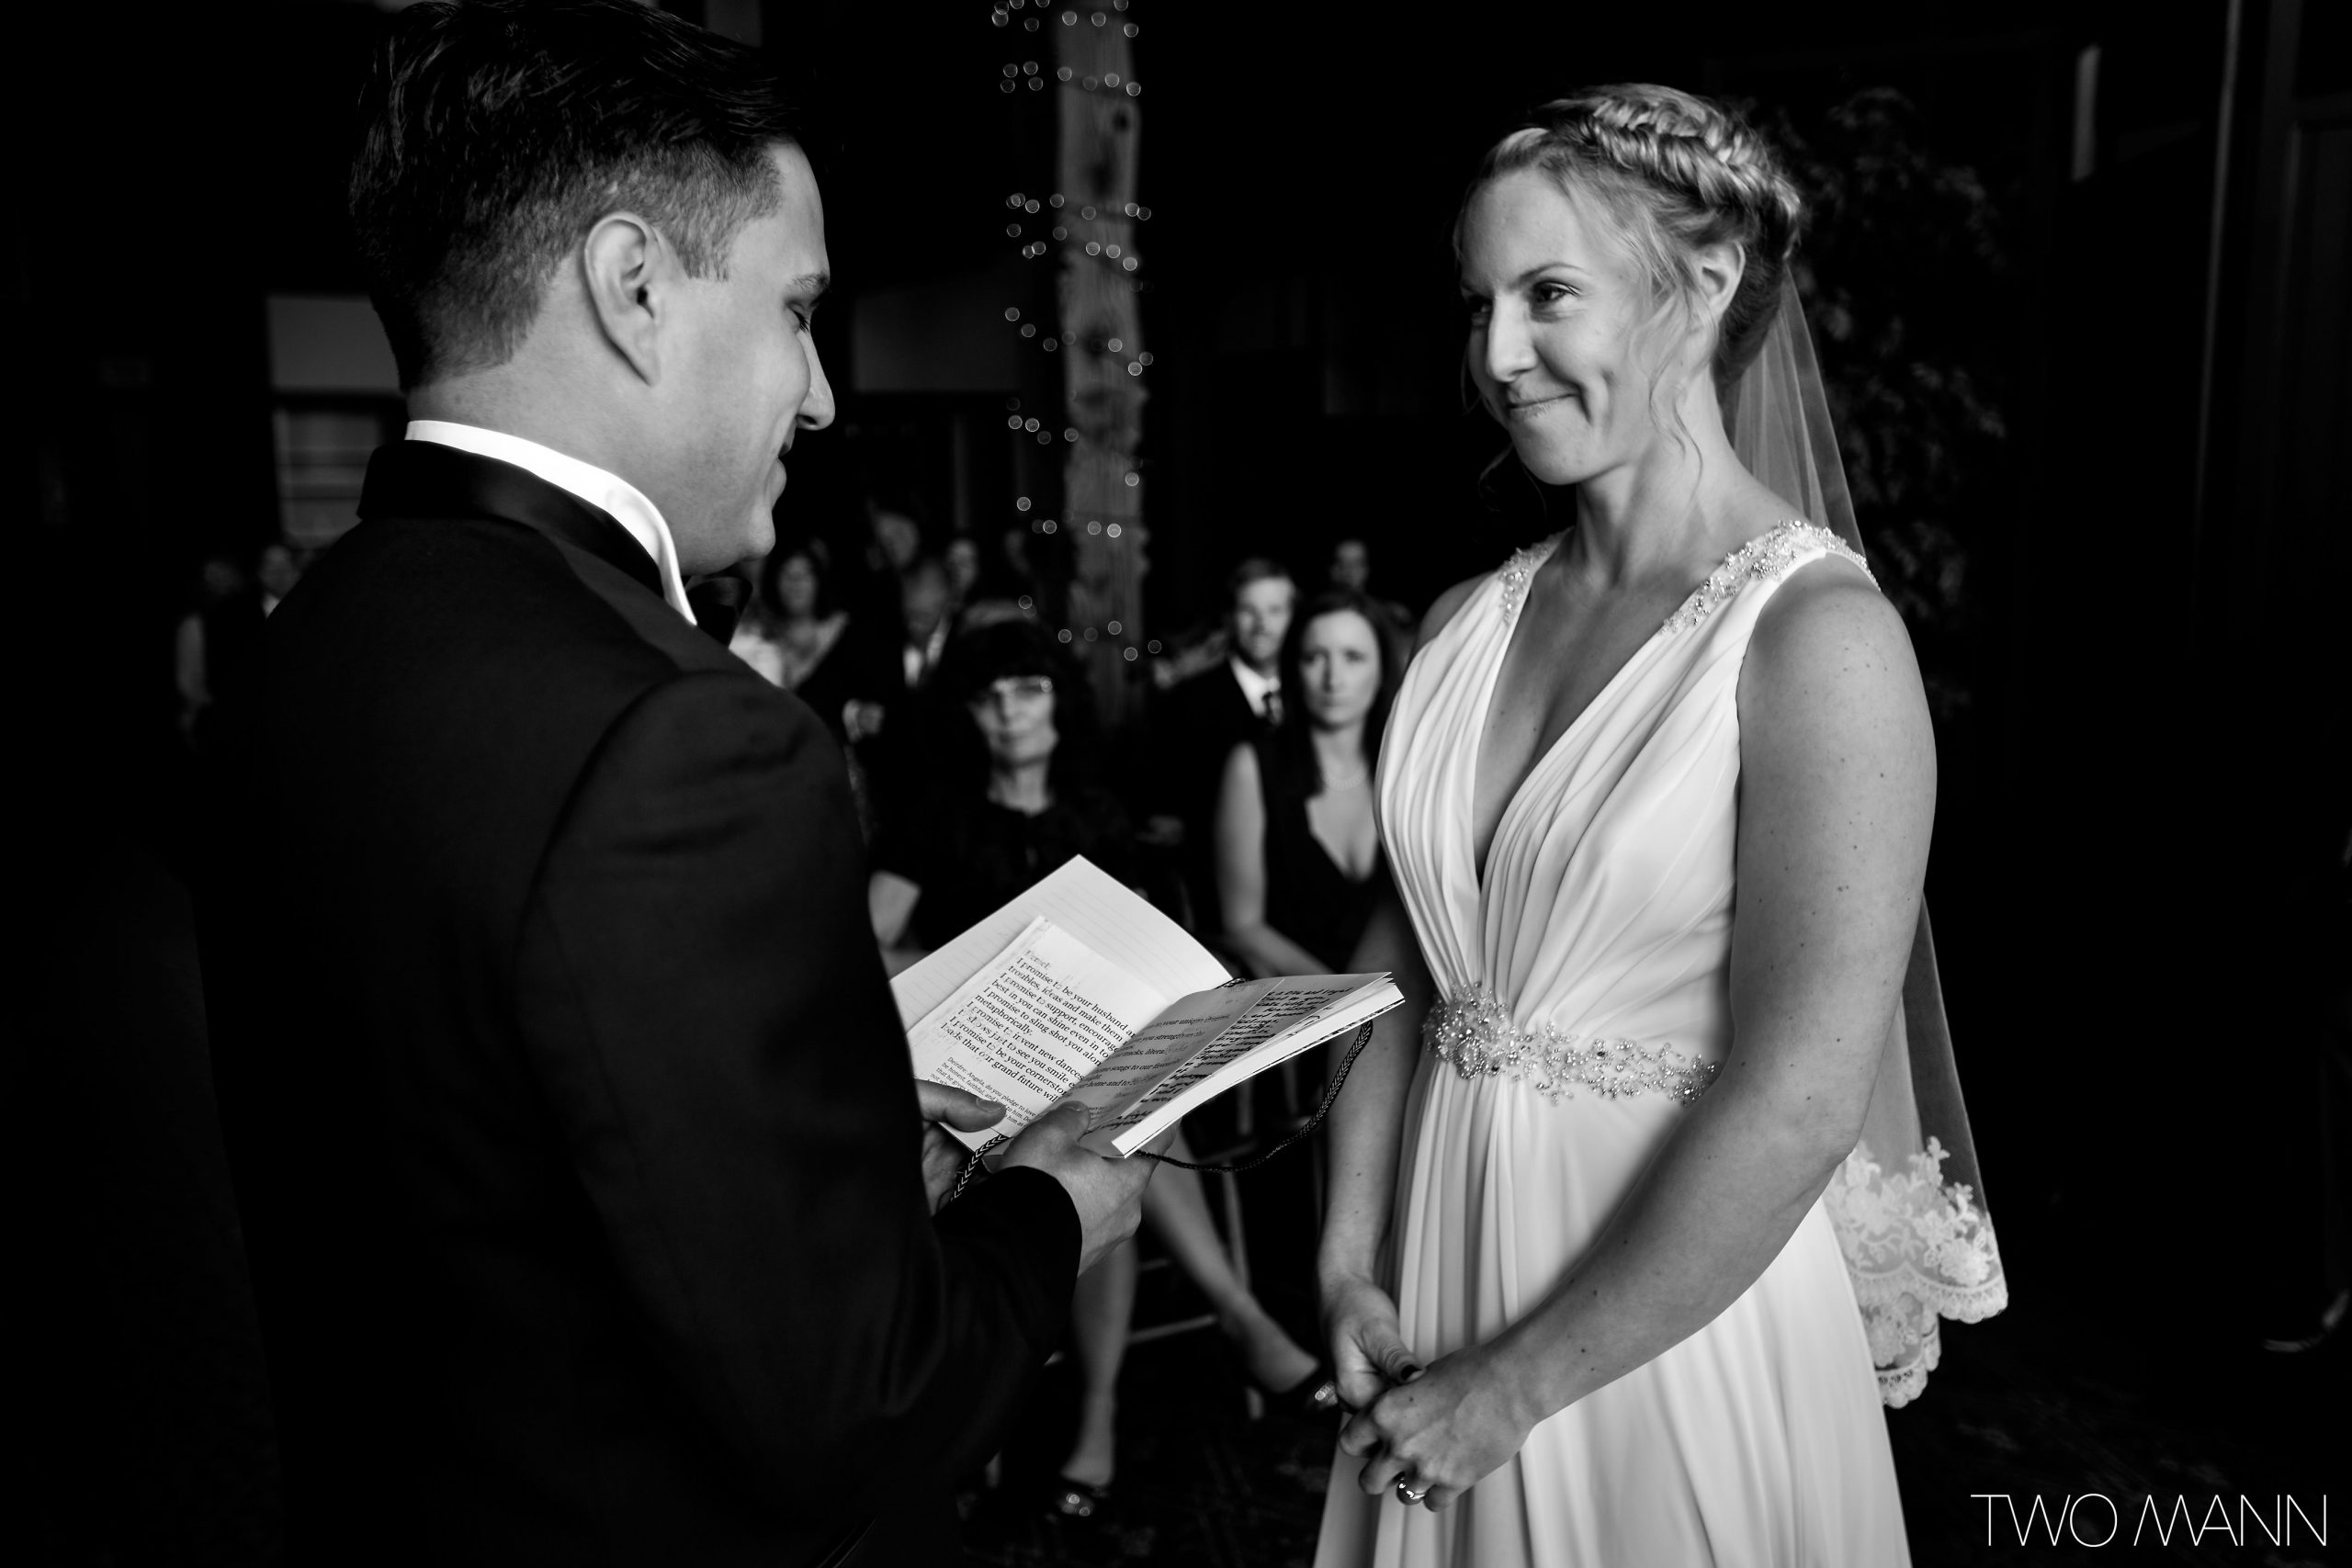 a groom reading marriage vows to his bride